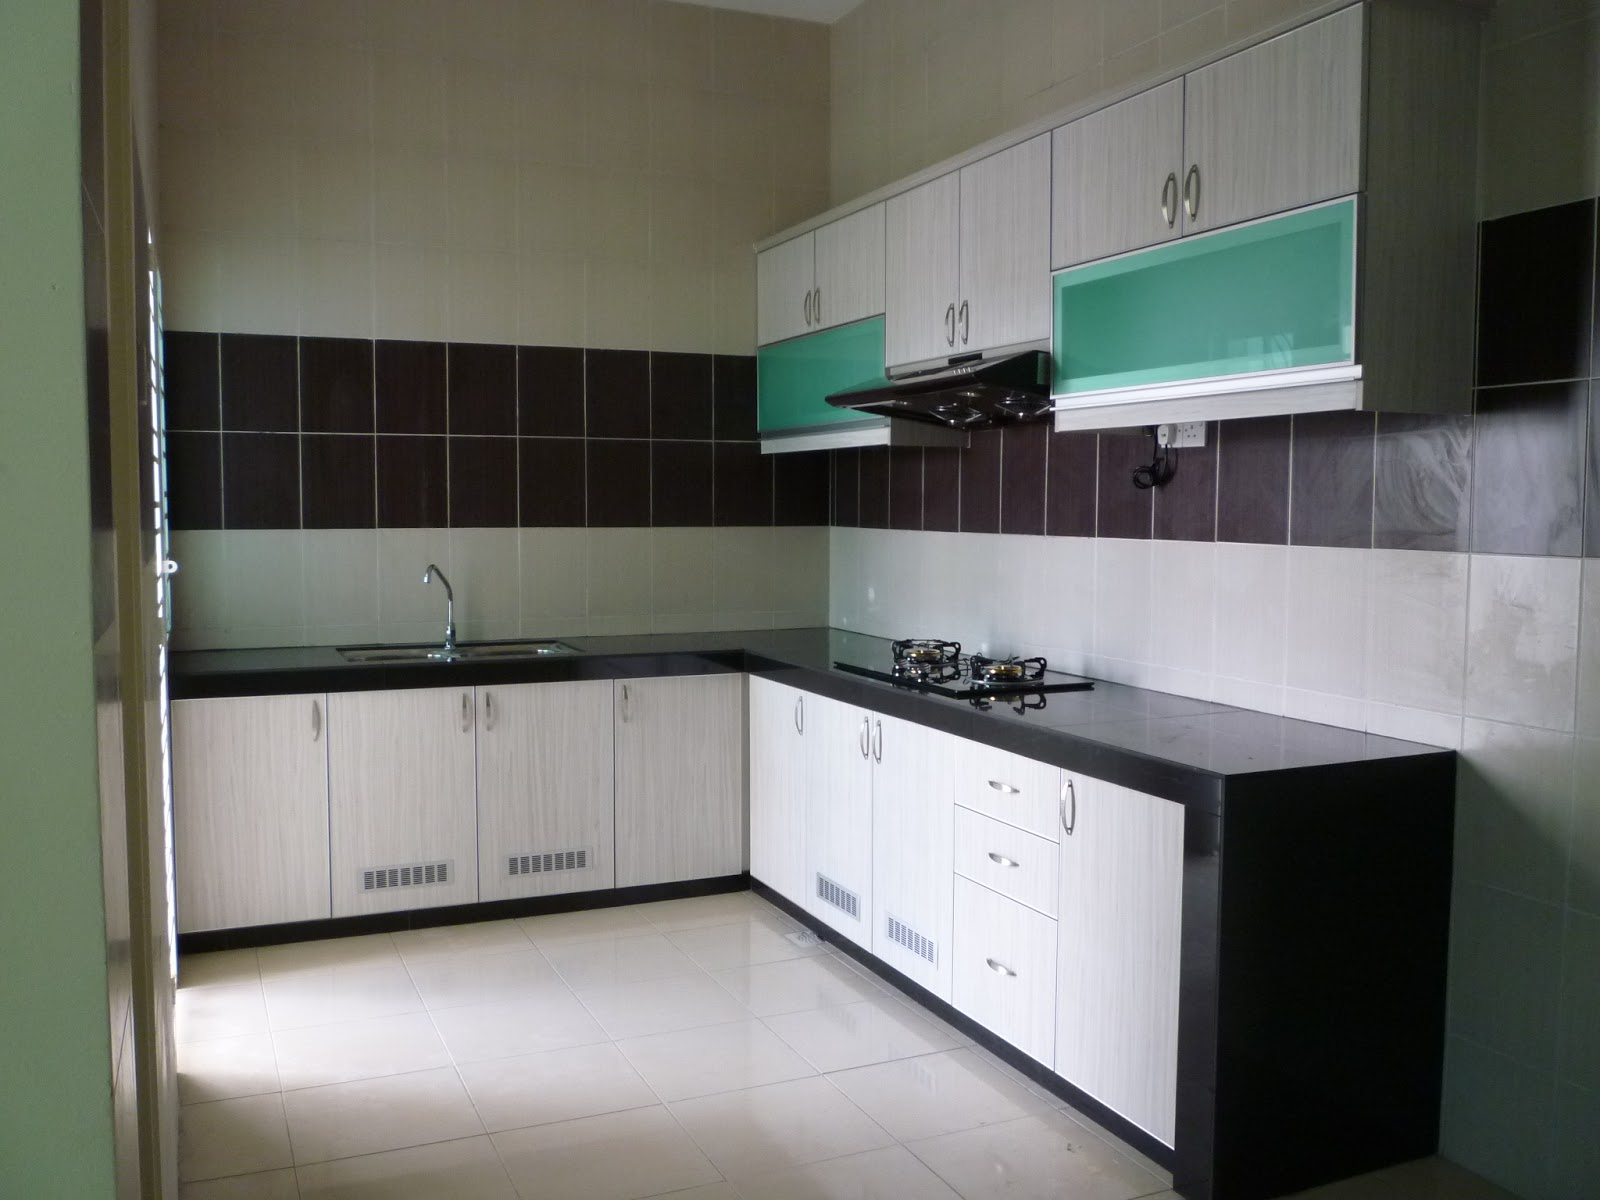 Kitchen Cabinets Online Malaysia Nova Kitchen And Deco Sdn Bhd Kitchen Cabinet In Light